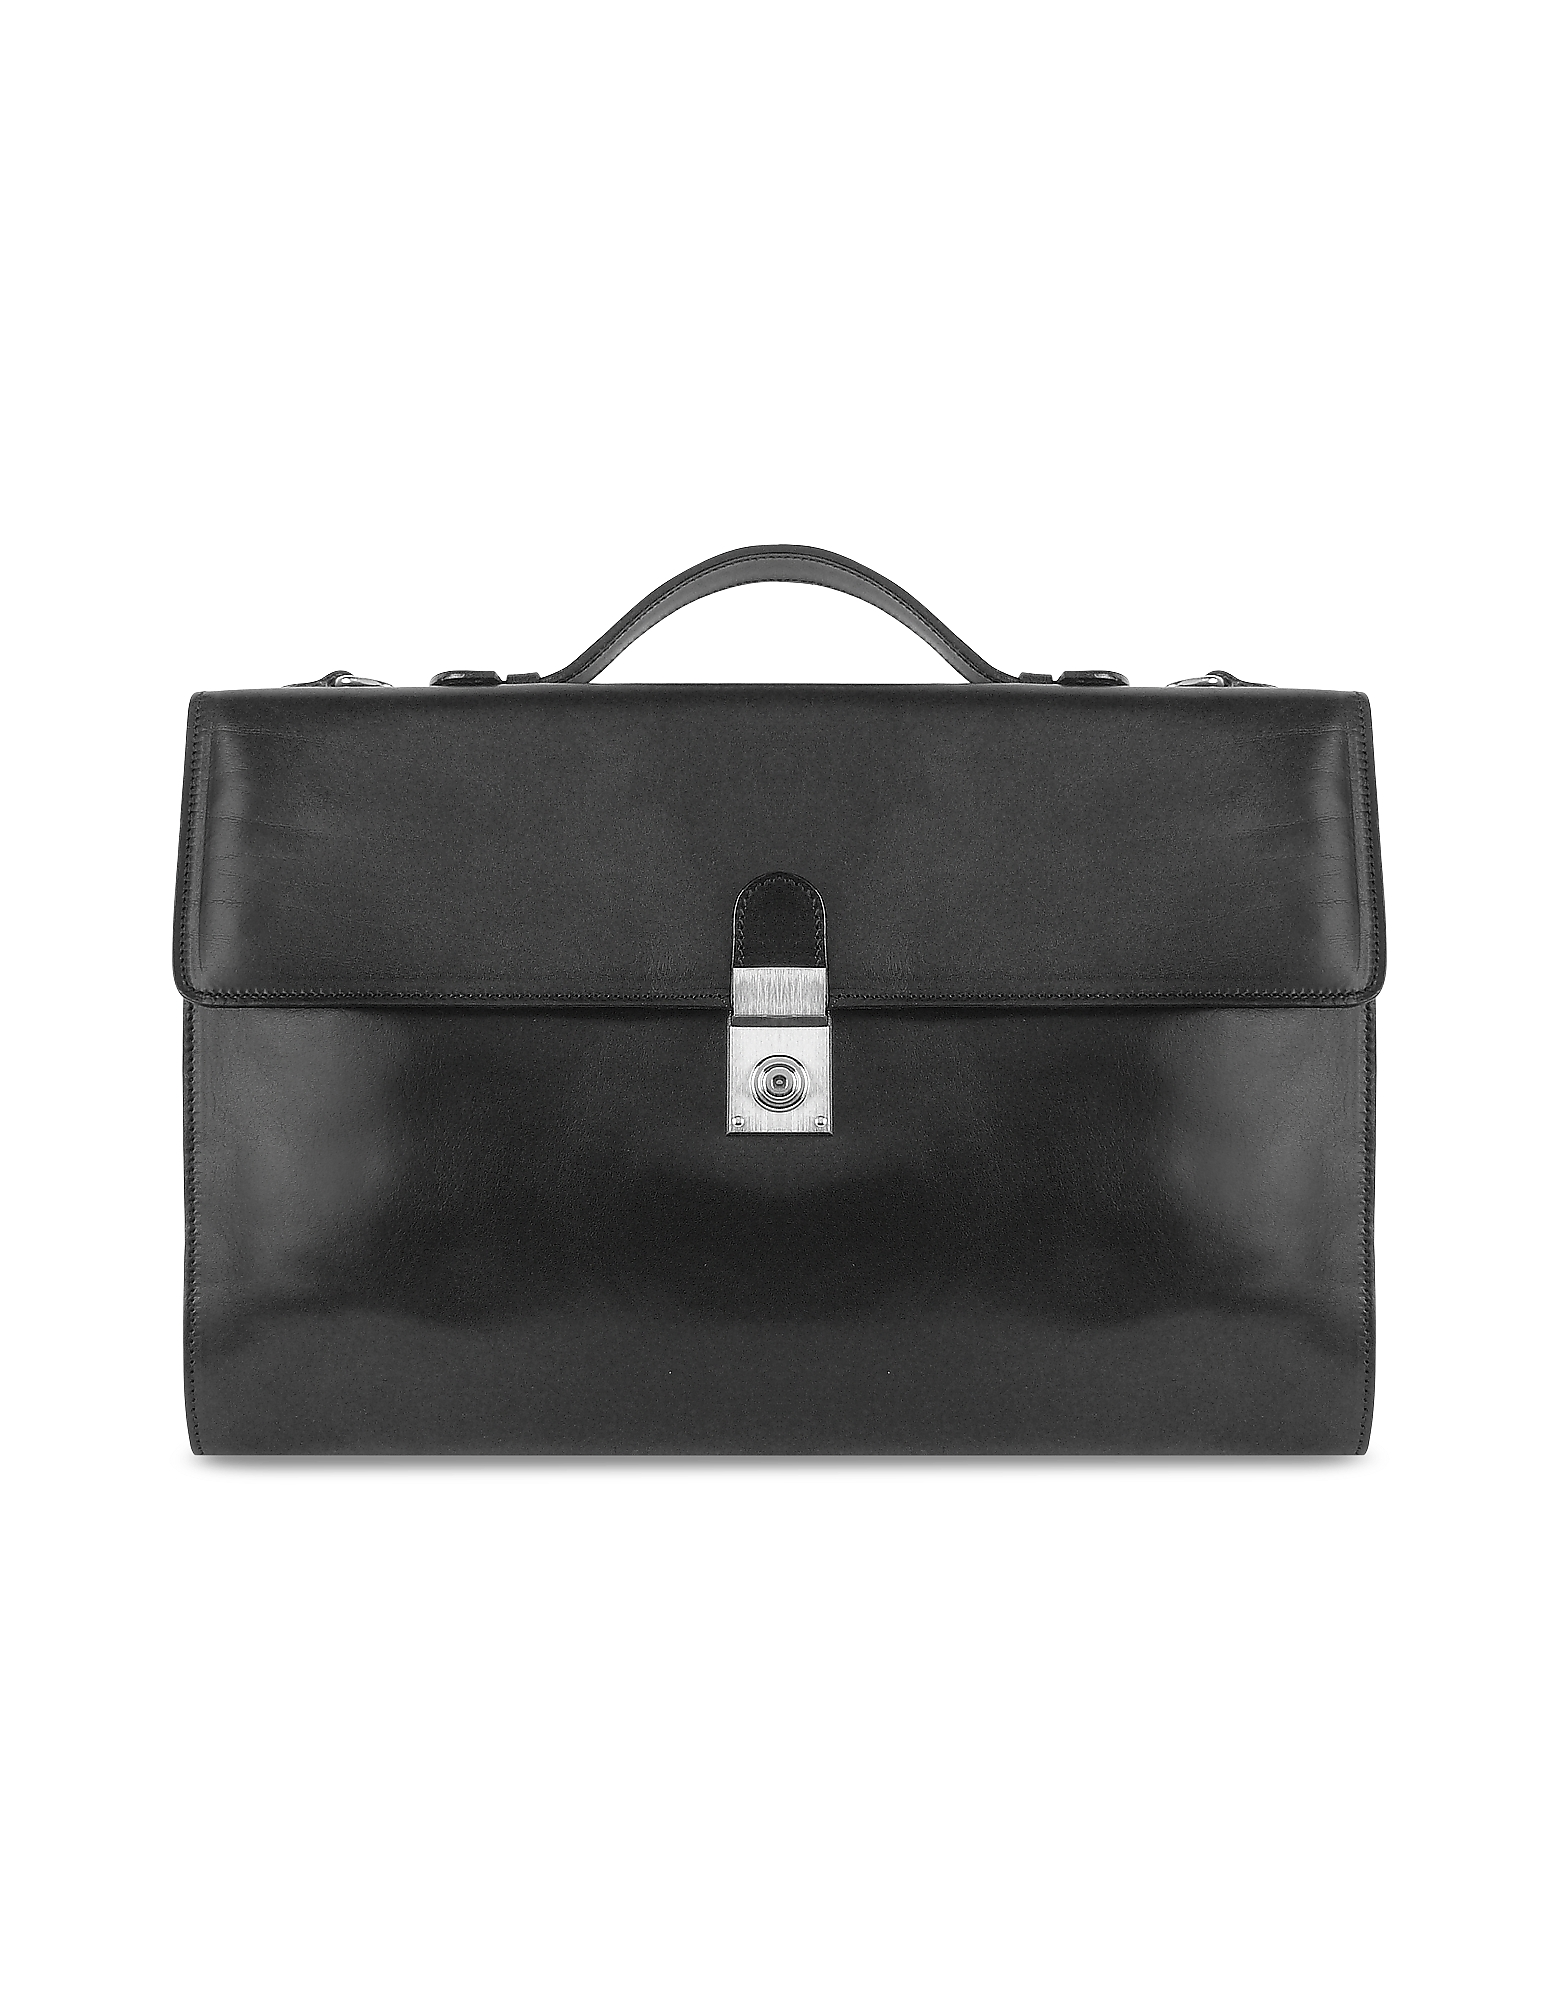 L.A.P.A. Designer Briefcases,  Men's Black Italian Leather Portfolio Briefcase